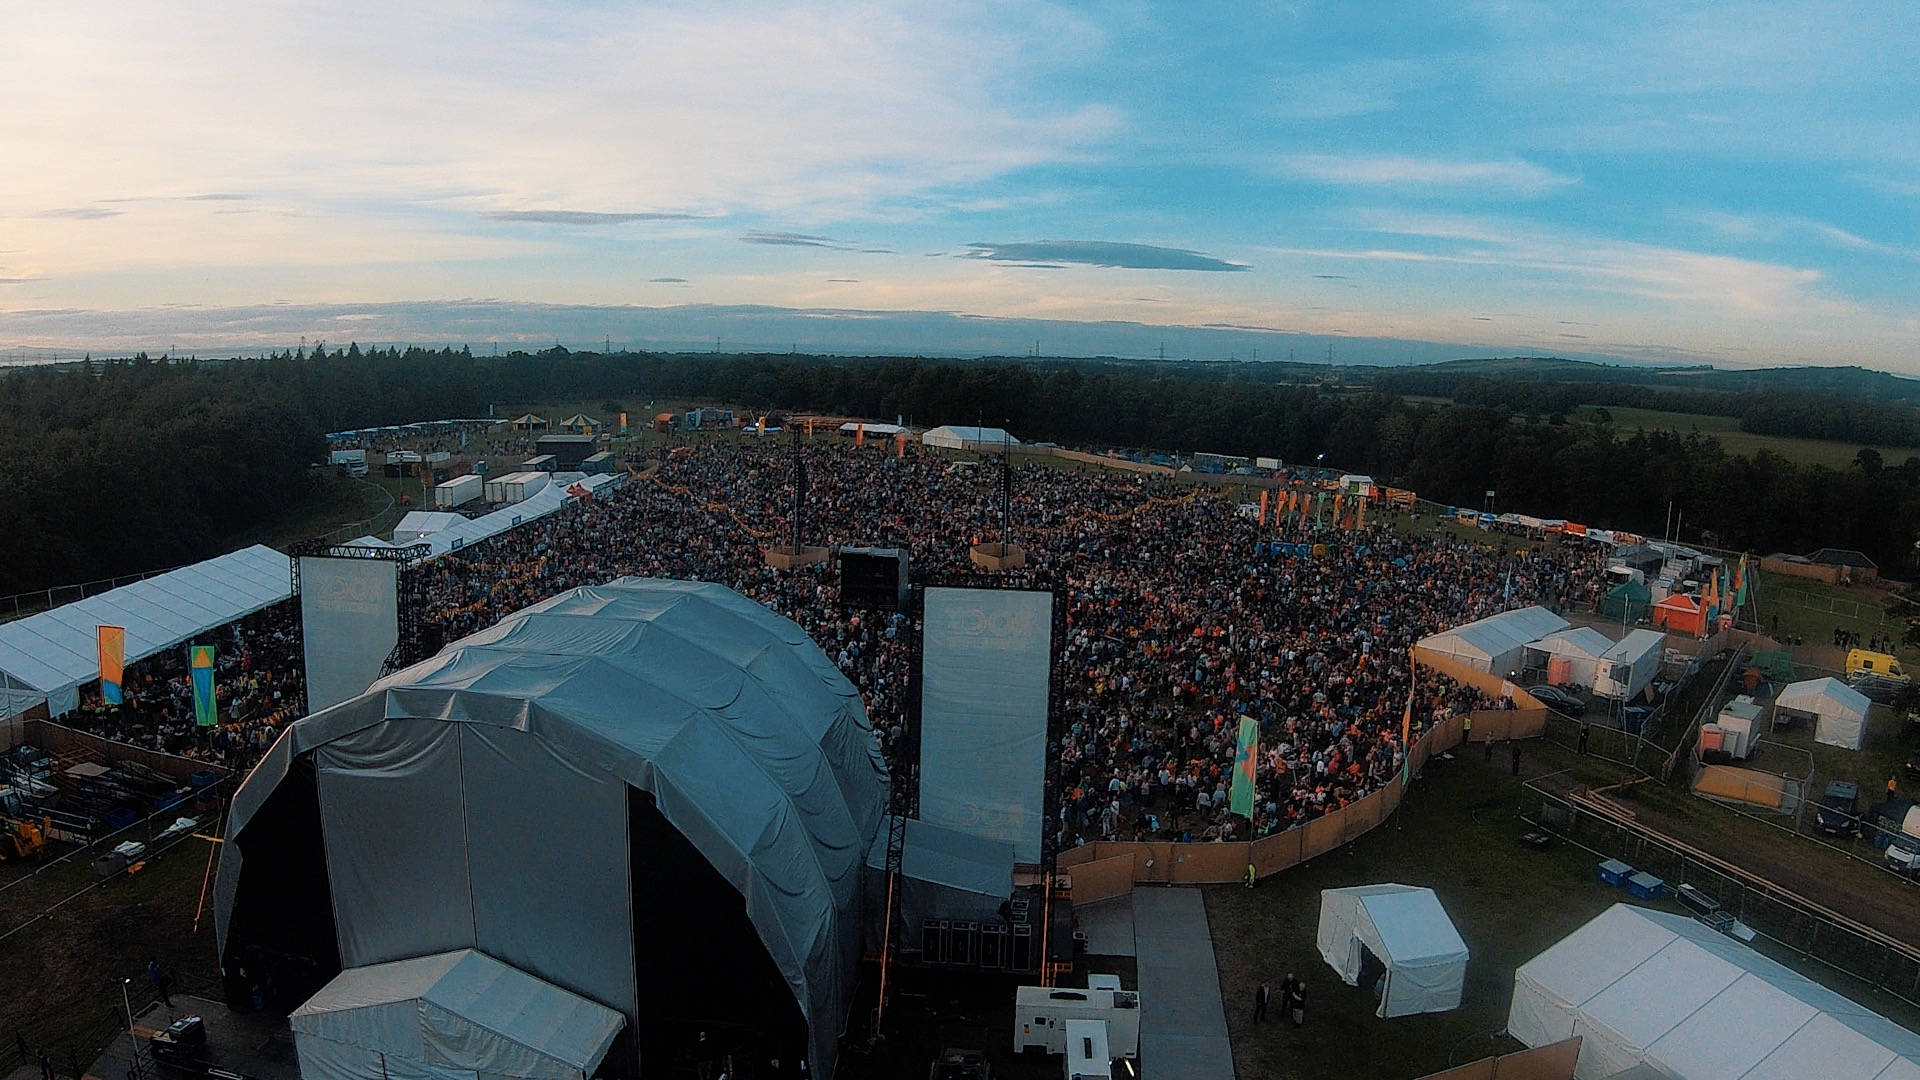 View from Backstage at Let's Rock Scotland